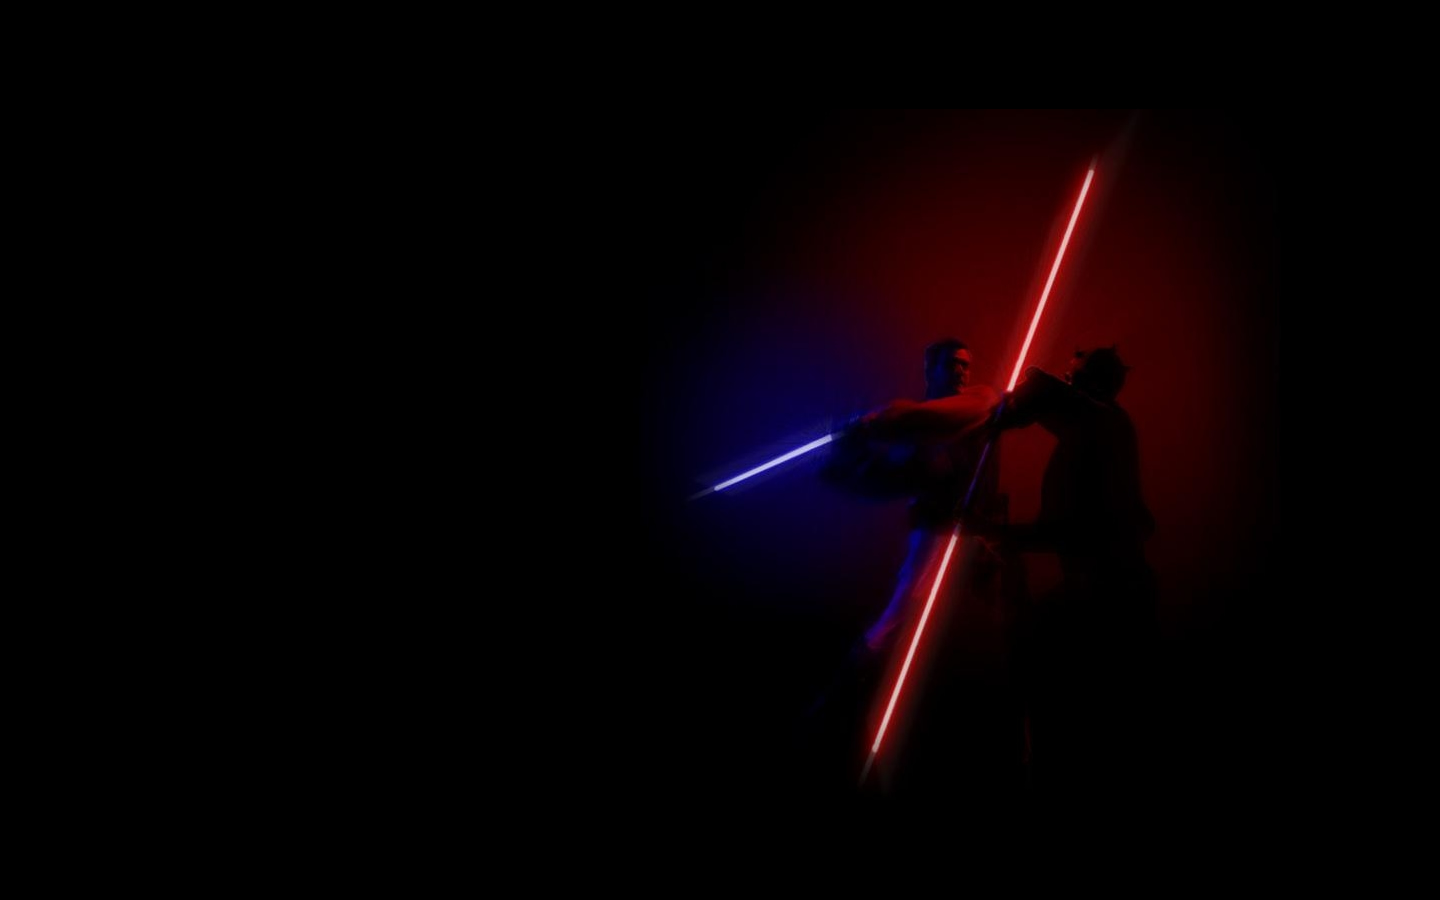 hd lightsaber wallpaper - wallpapersafari